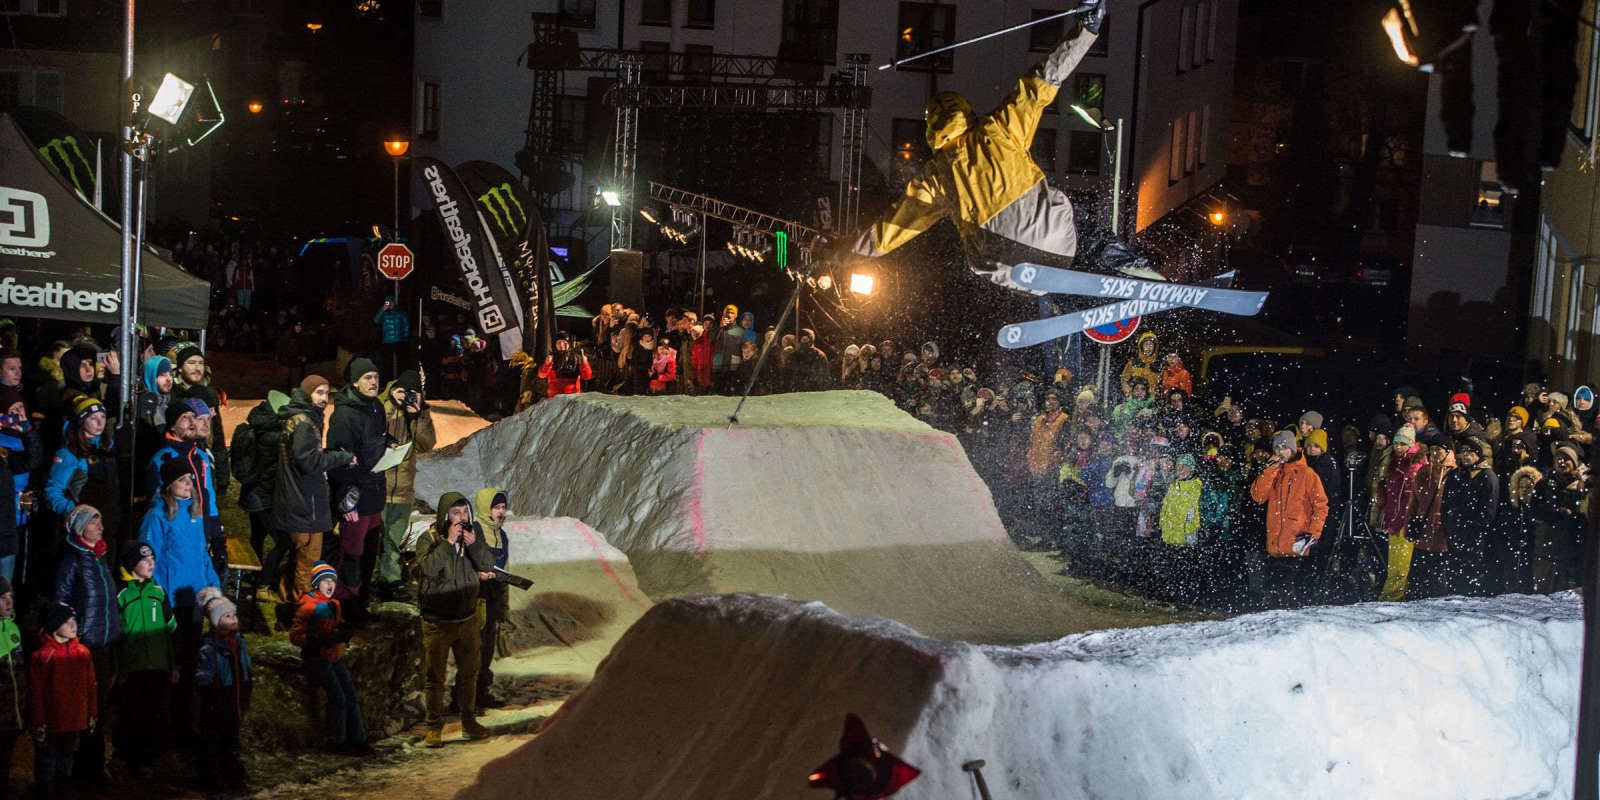 Horsefeathers Iron Jam 2019 - Skiing and Snowboarding jam. Monster sponsored event, but athletes in images are not sponsored.